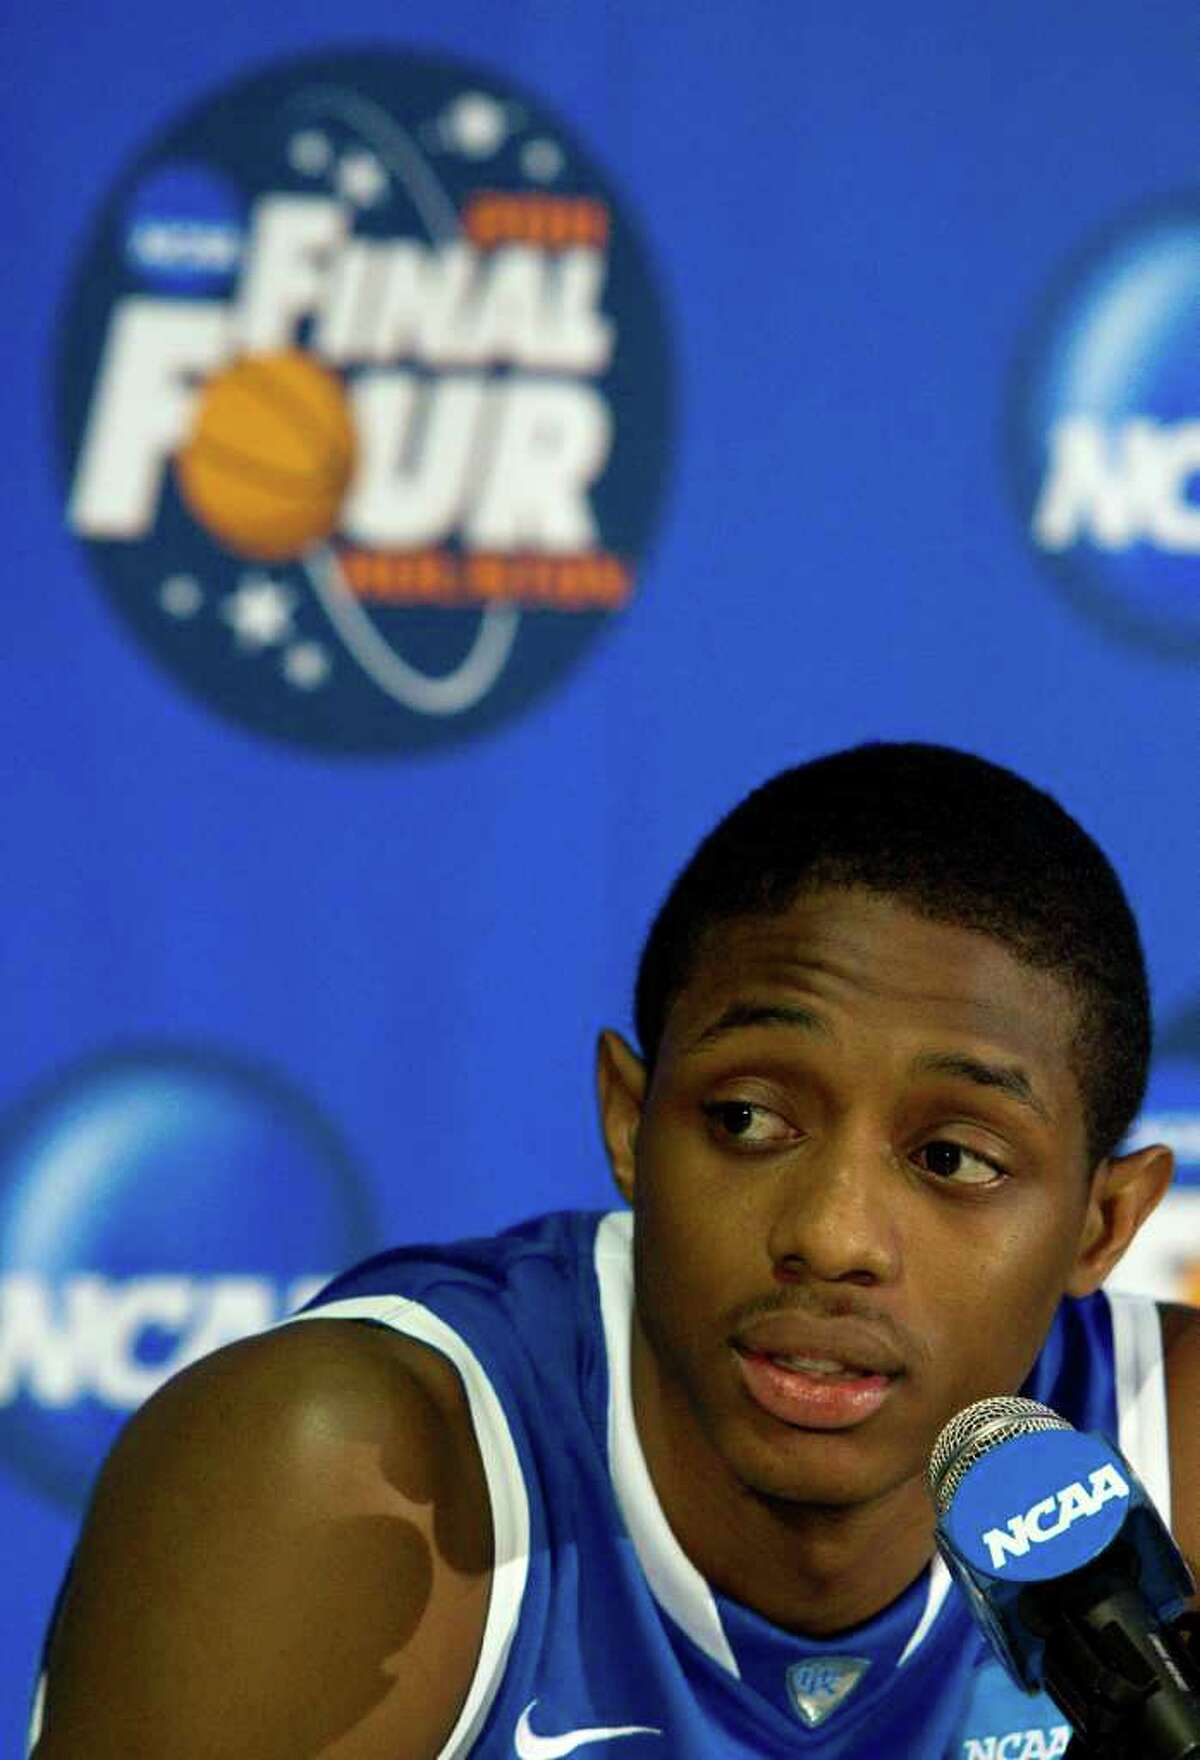 Kentucky guard Brandon Knight (12) answers a question during a Final Four news conference at Reliant Stadium Thursday, March 31, 2011, in Houston. ( Brett Coomer / Houston Chronicle )